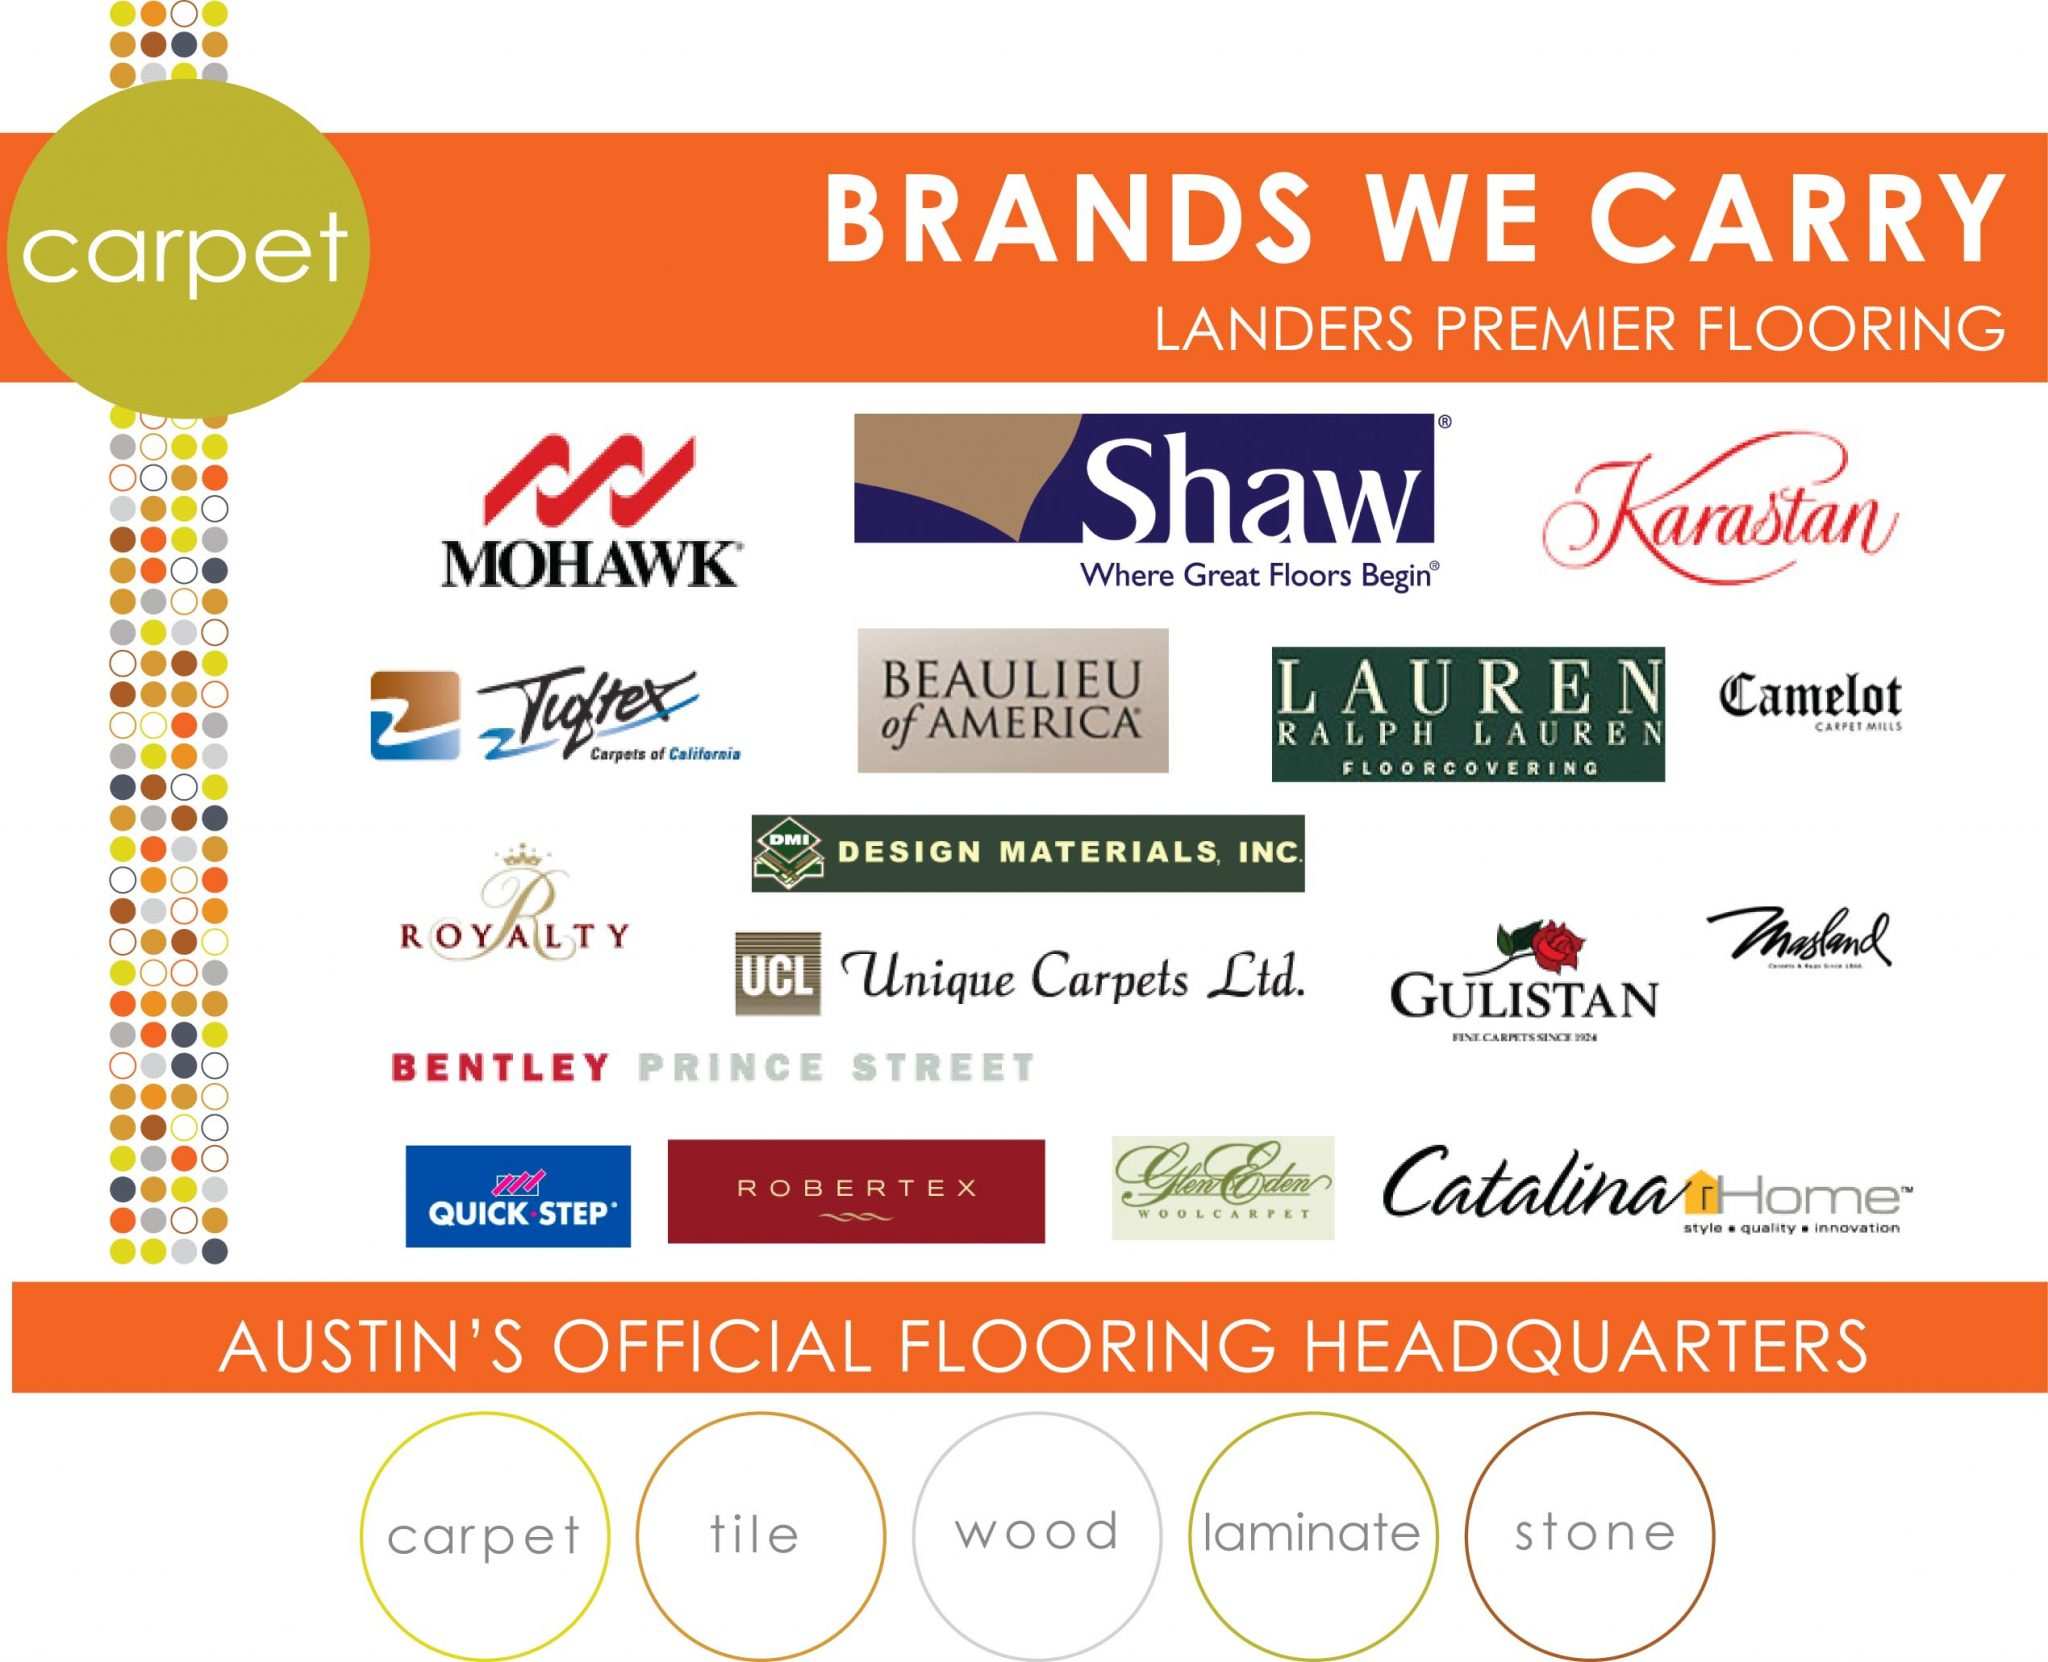 Carpet Brands